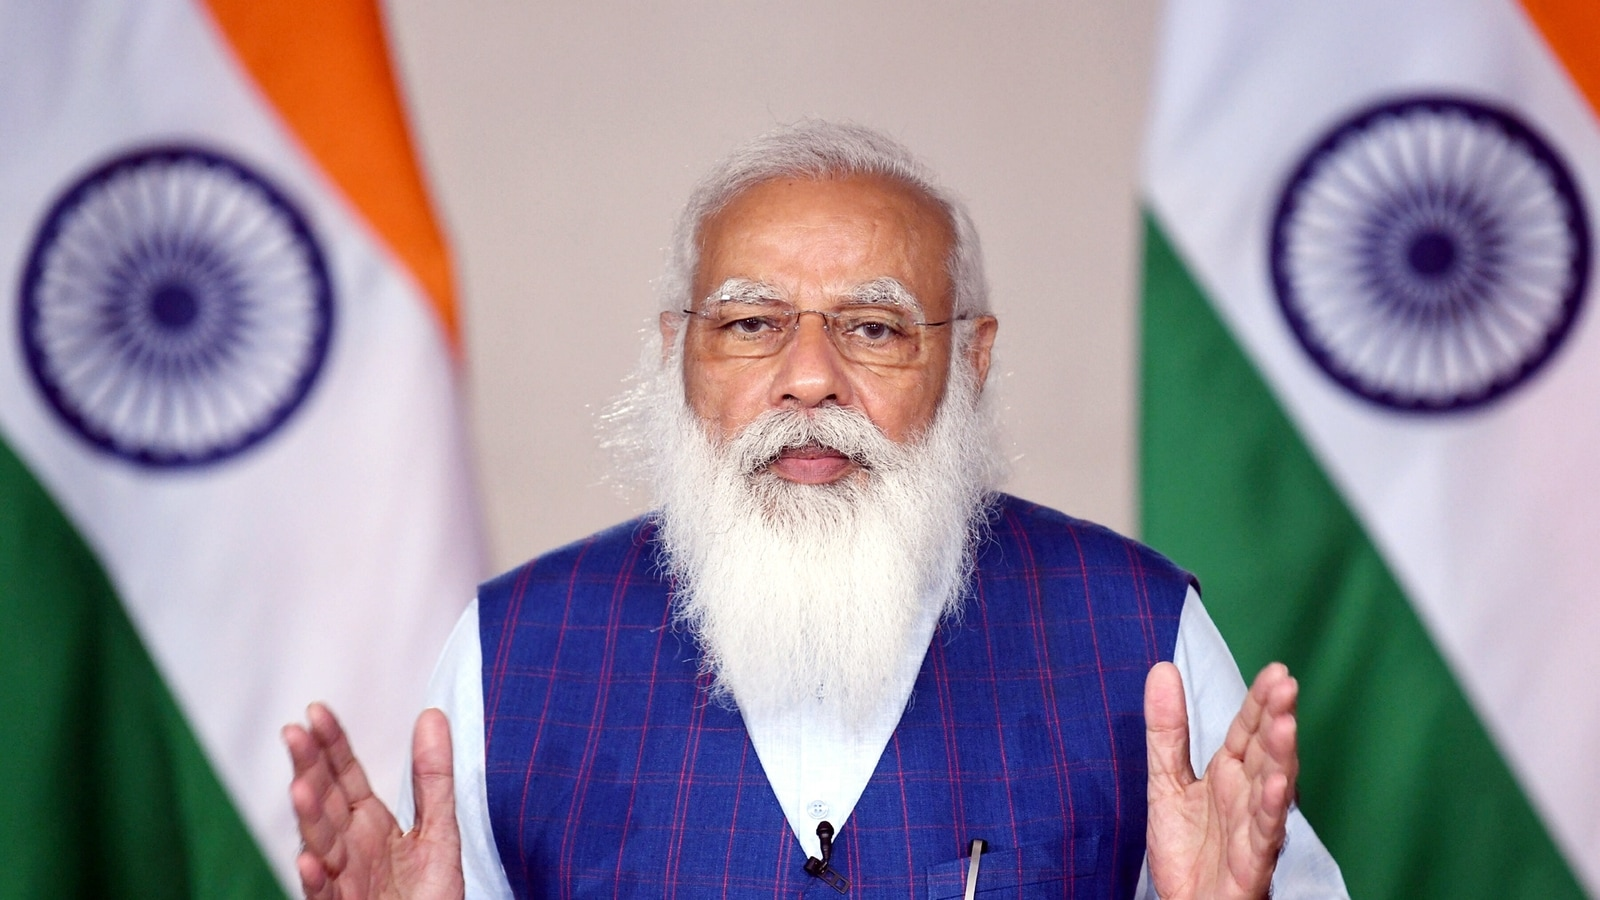 PM Modi to interact with leading doctors at 4.30pm over Covid-19; video conference with top pharma firms scheduled at 6 - Hindustan Times